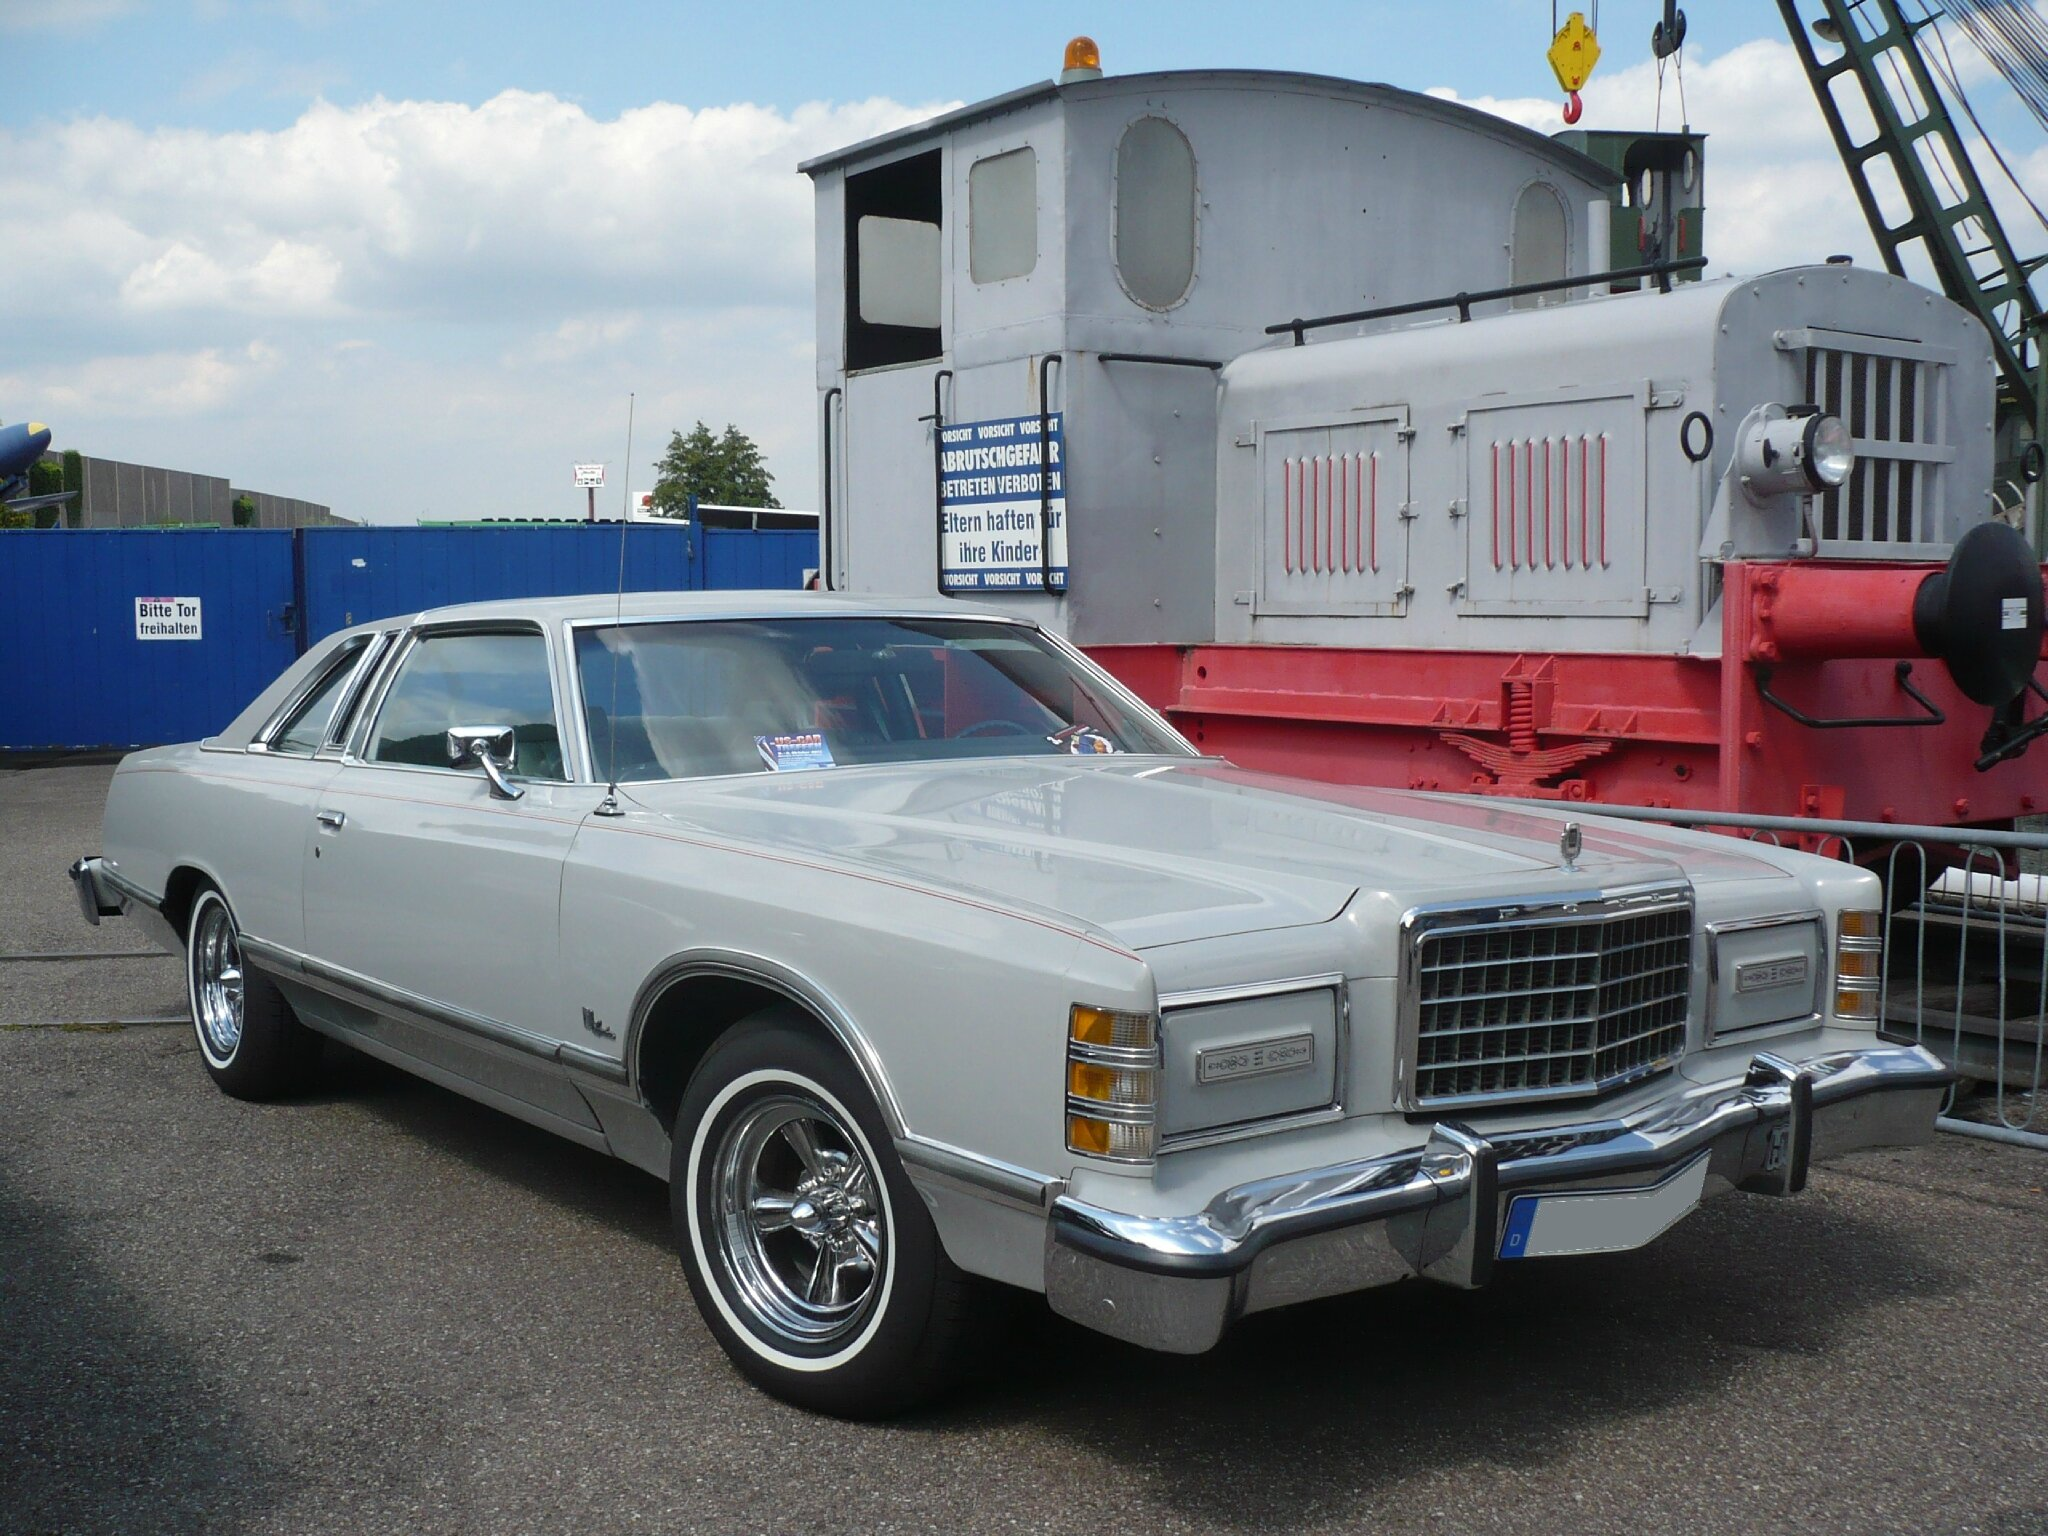 FORD Ltd Landau 2door coupé 1977 Sinsheim (1)